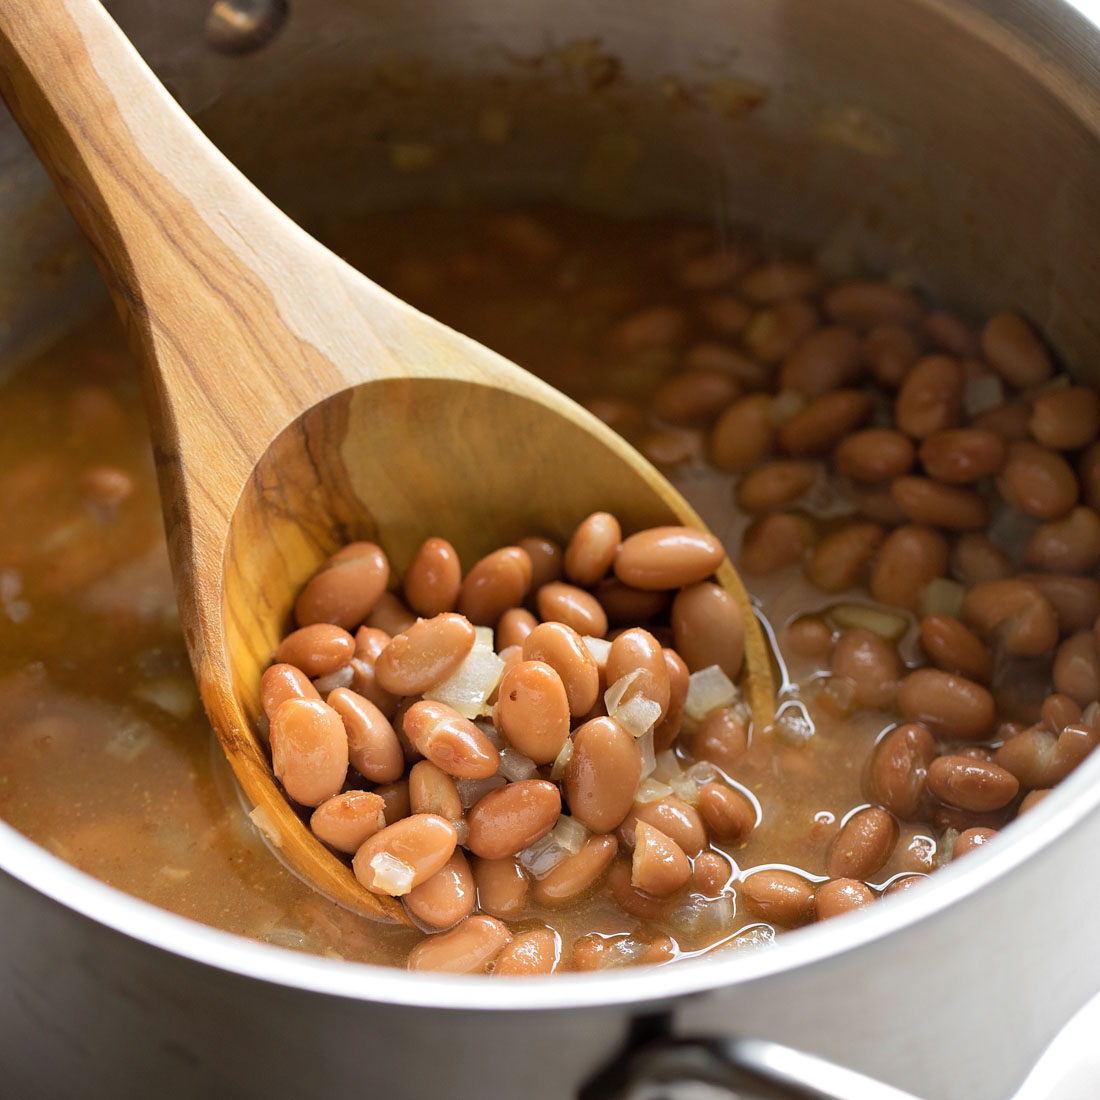 Pinto beans in pot cooking